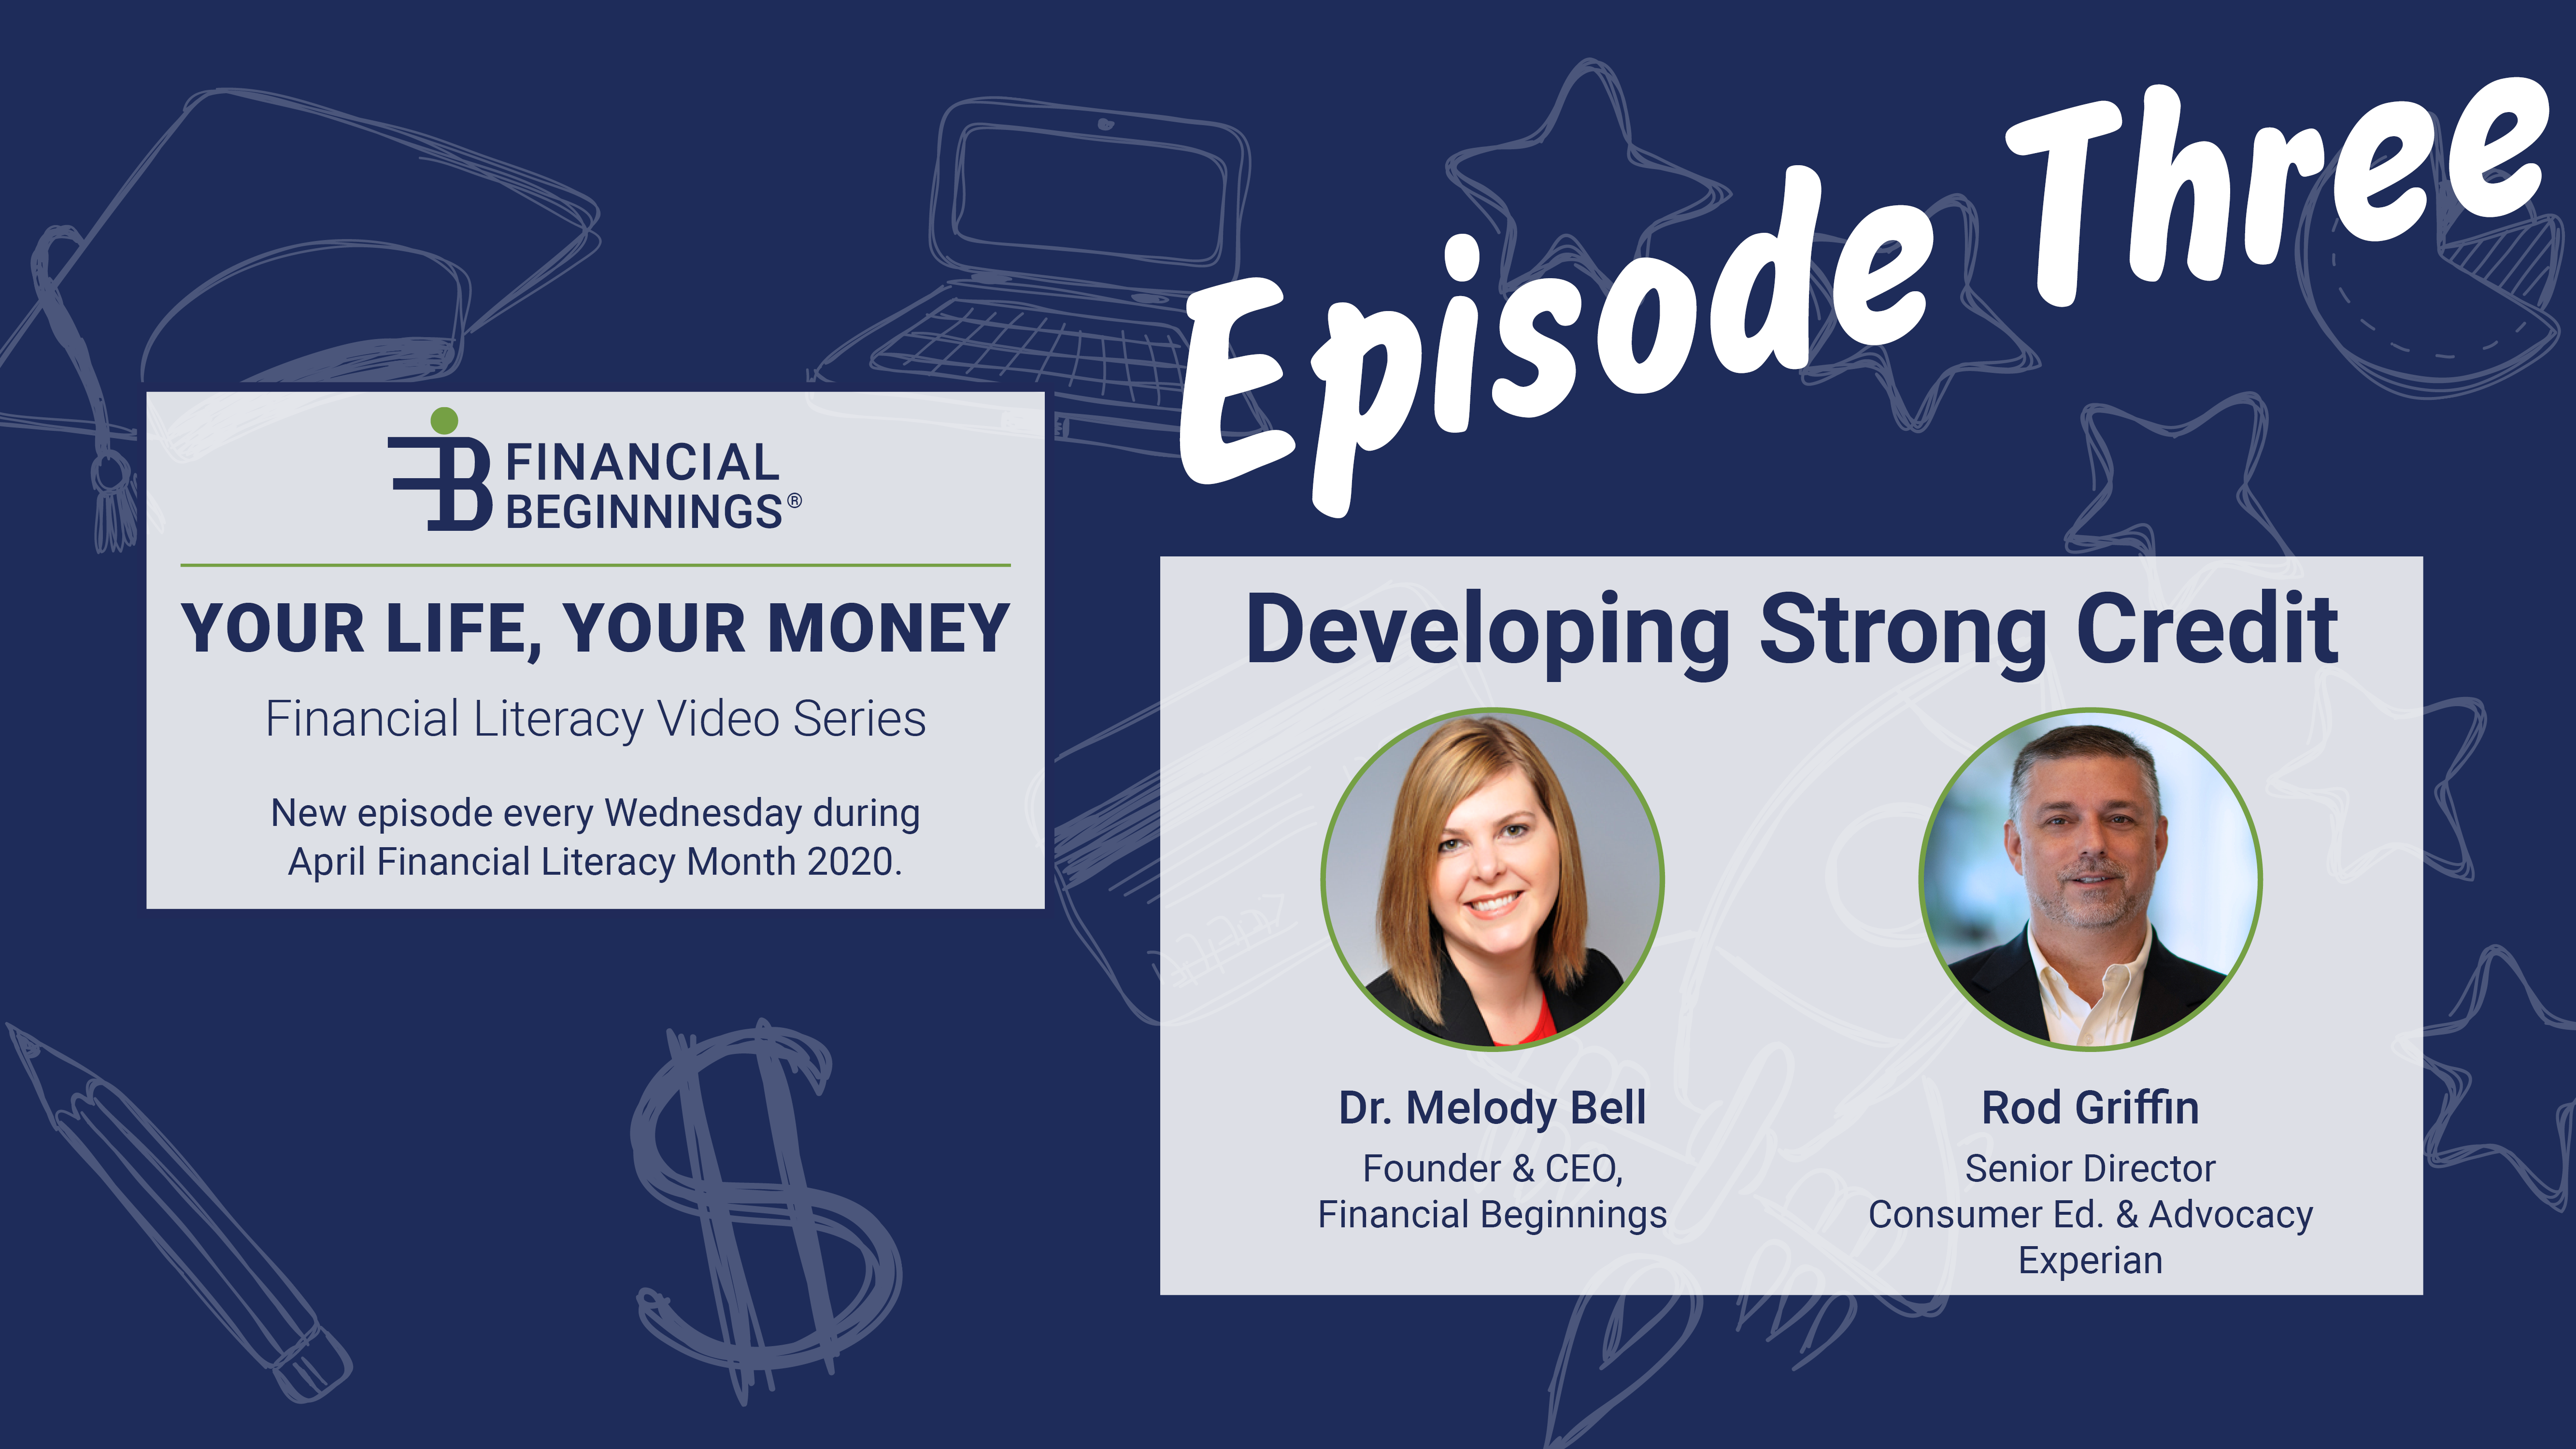 Episode 3: Developing Strong Credit